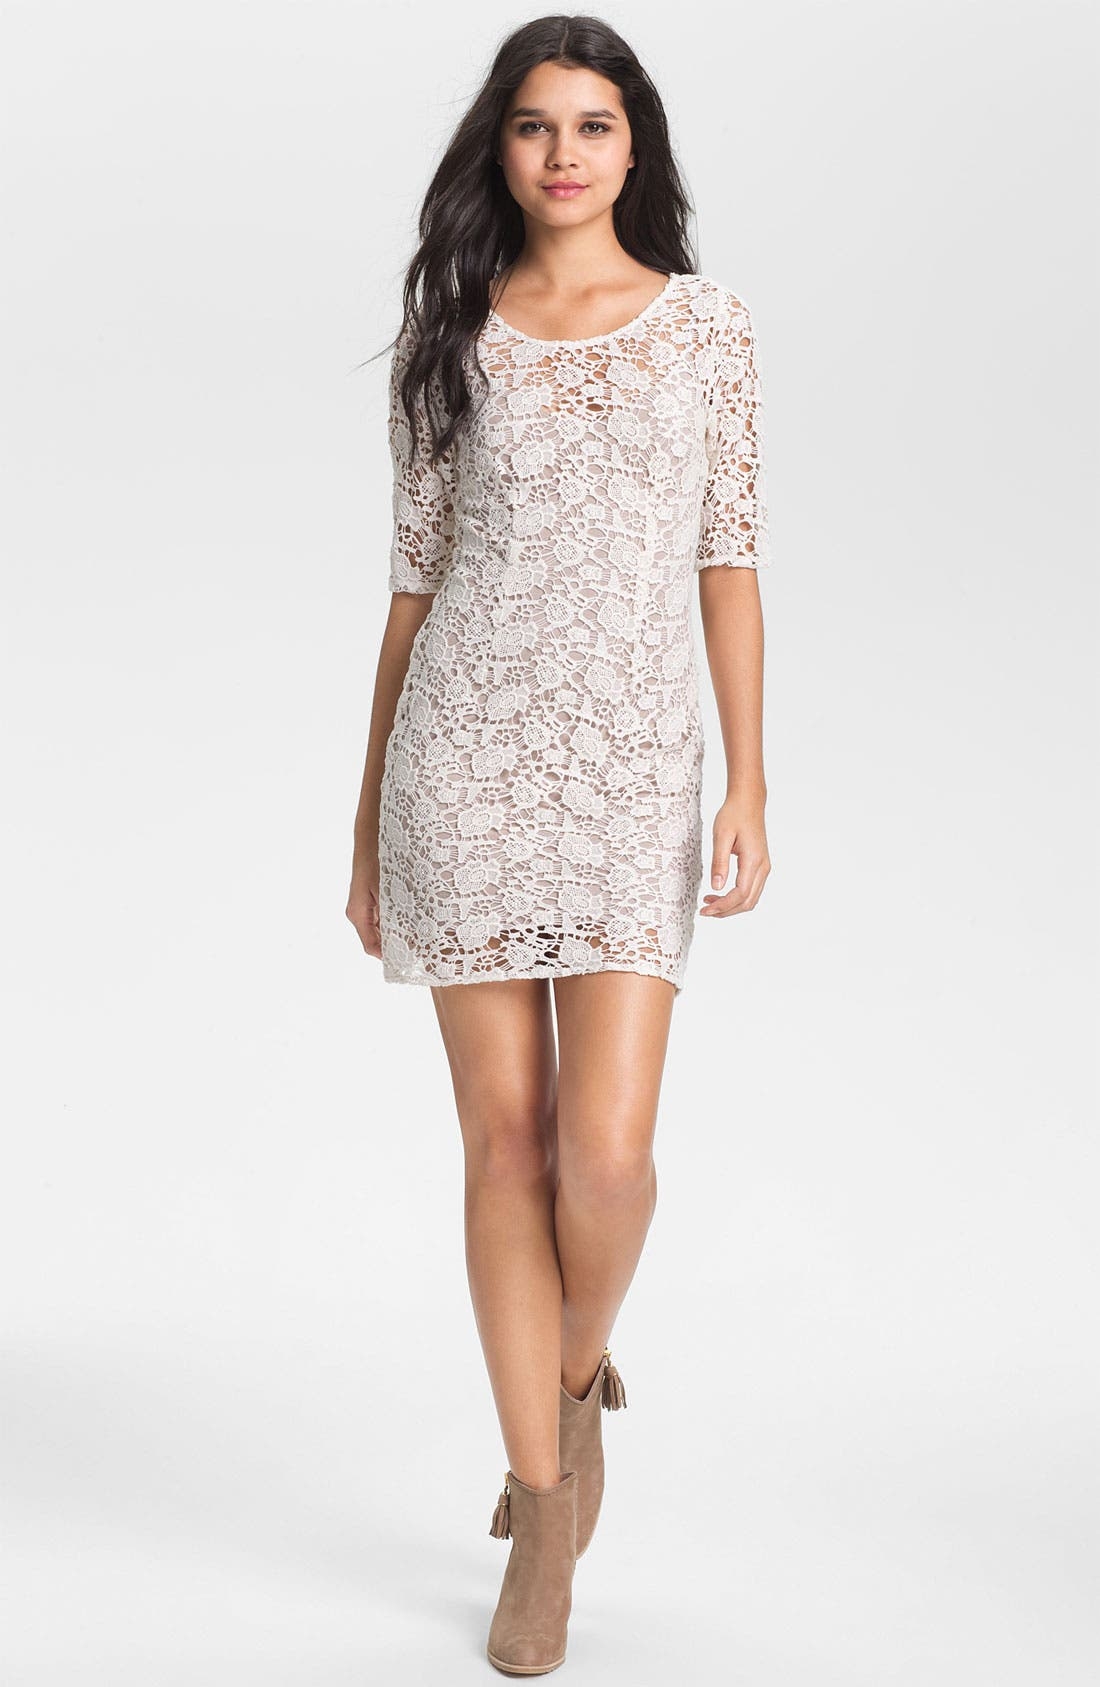 Alternate Image 1 Selected - Lily Aldridge for Velvet by Graham & Spencer Crochet Lace Dress